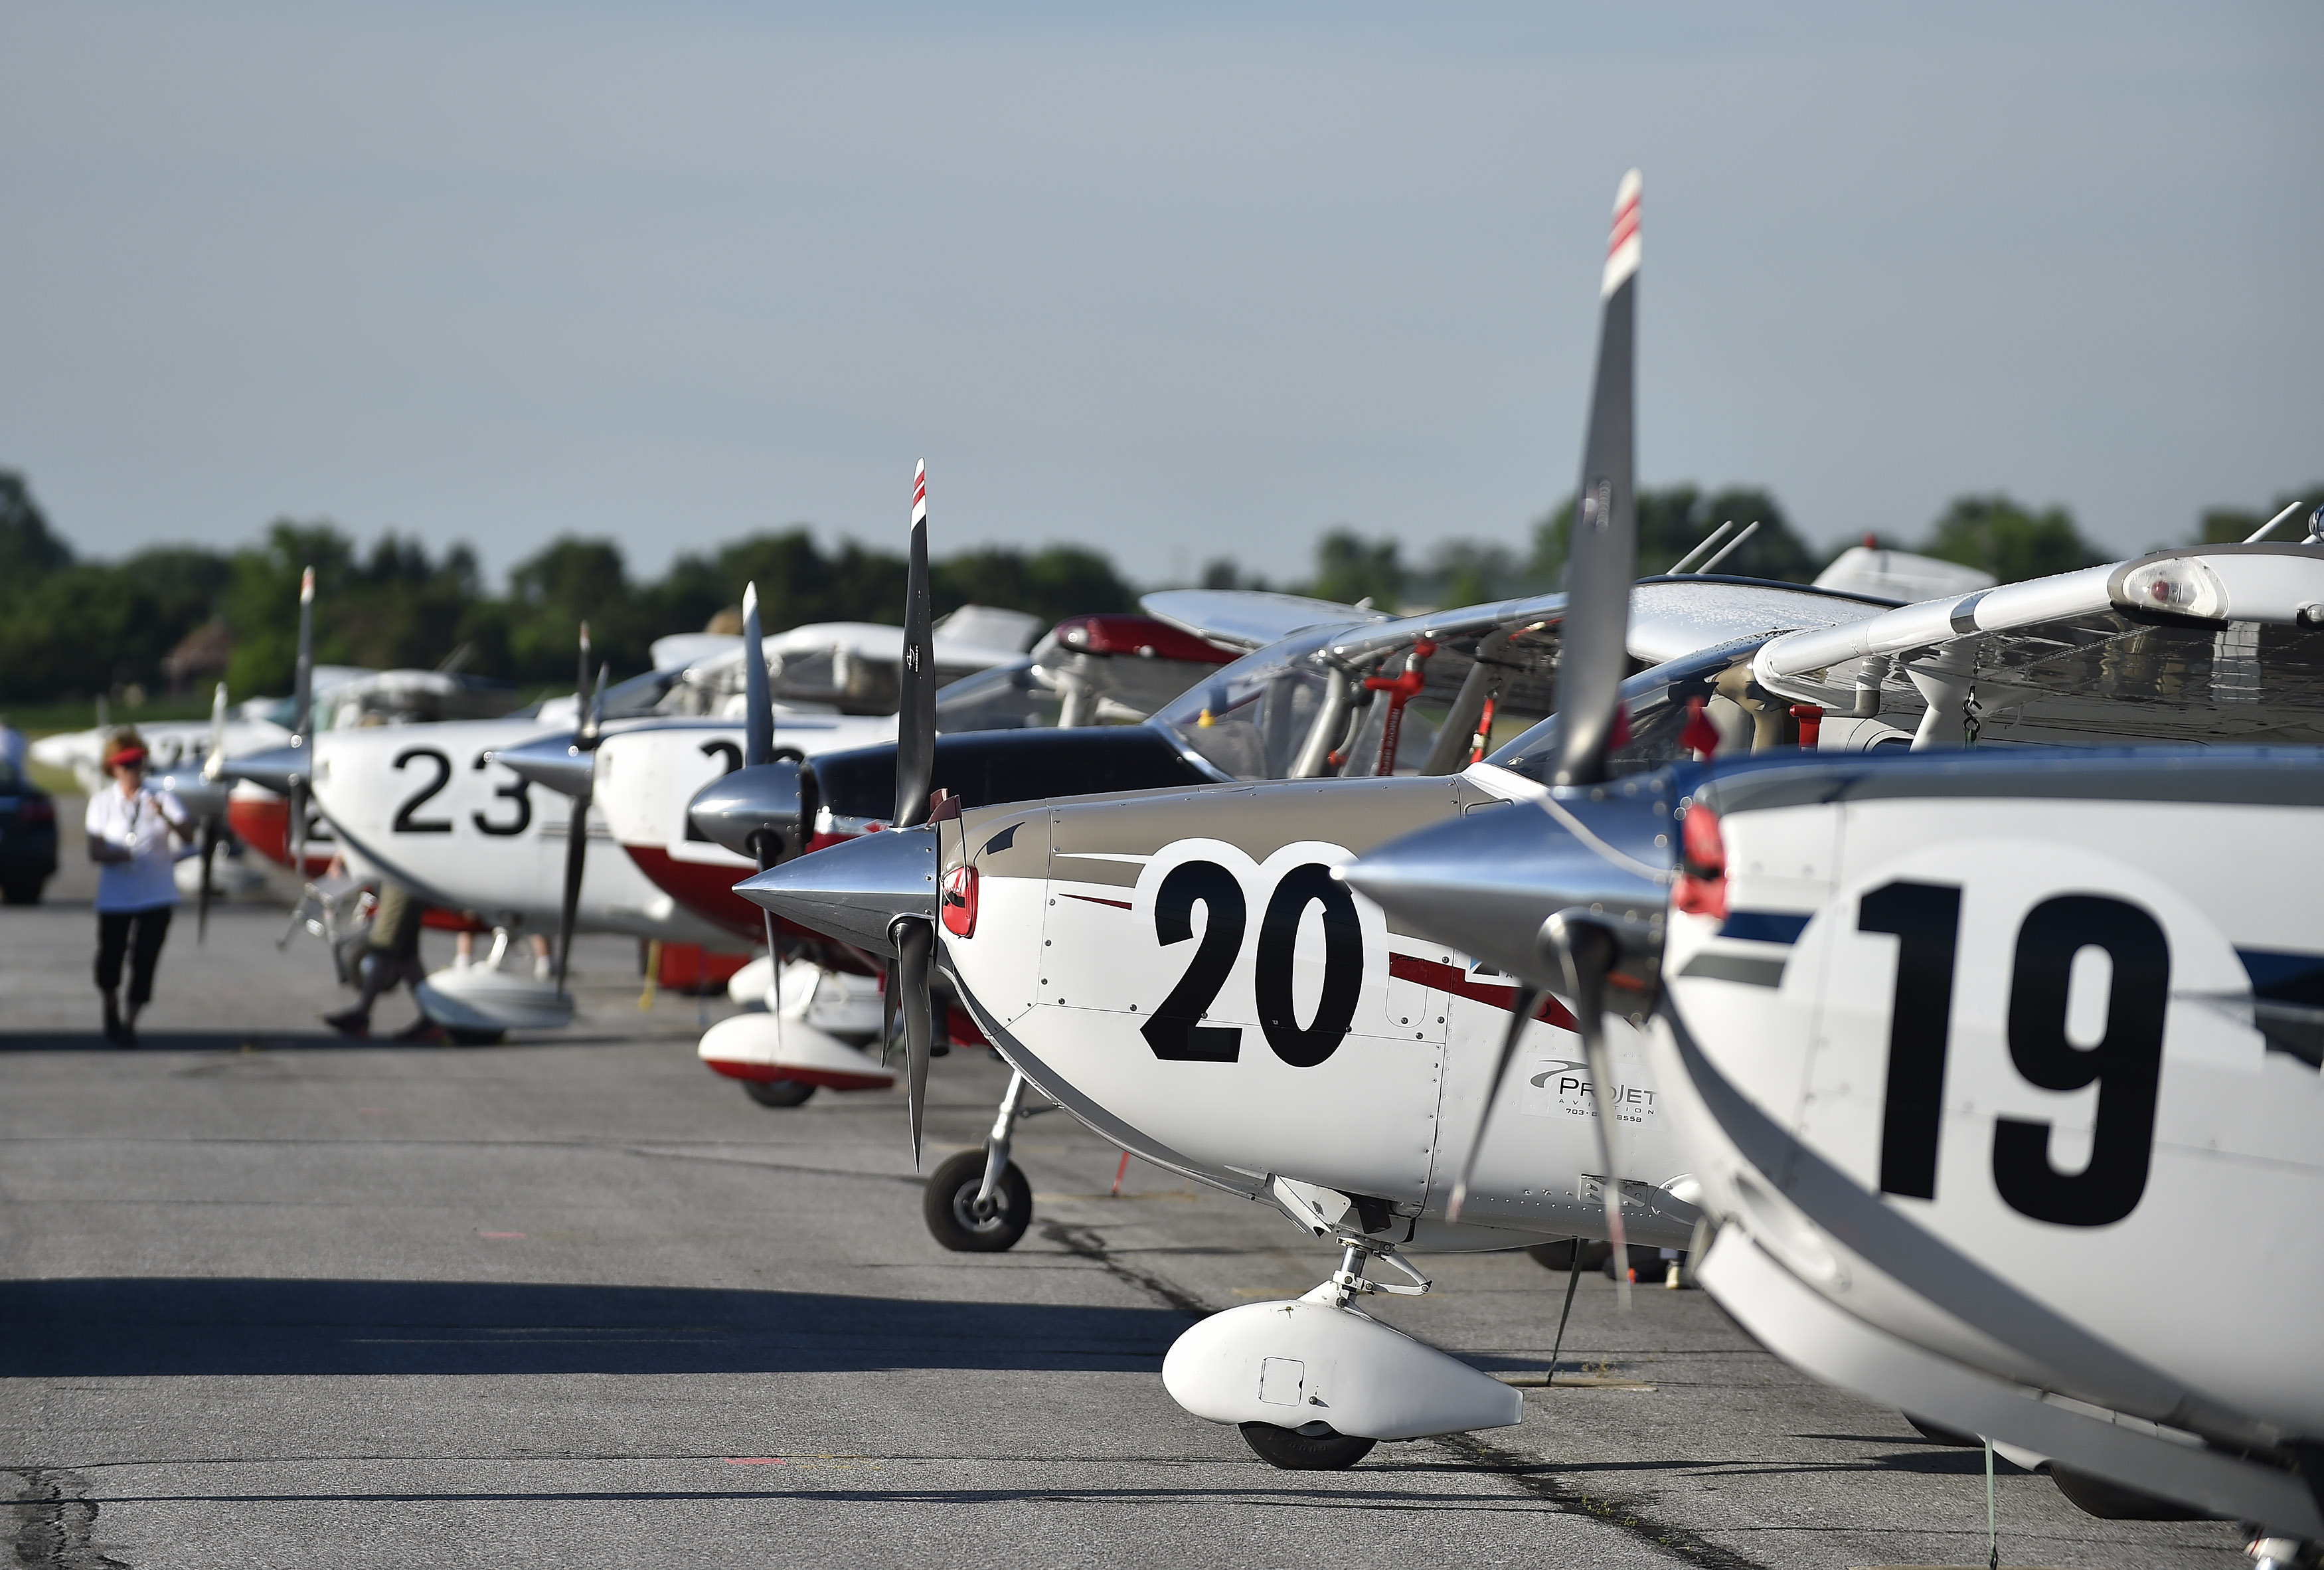 Aircraft await more than 100 Air Race Classic all-female competitors for a four-day, 14-state cross country journey from Frederick, Maryland, to Santa Fe, New Mexico, June 20. Photo by David Tulis.